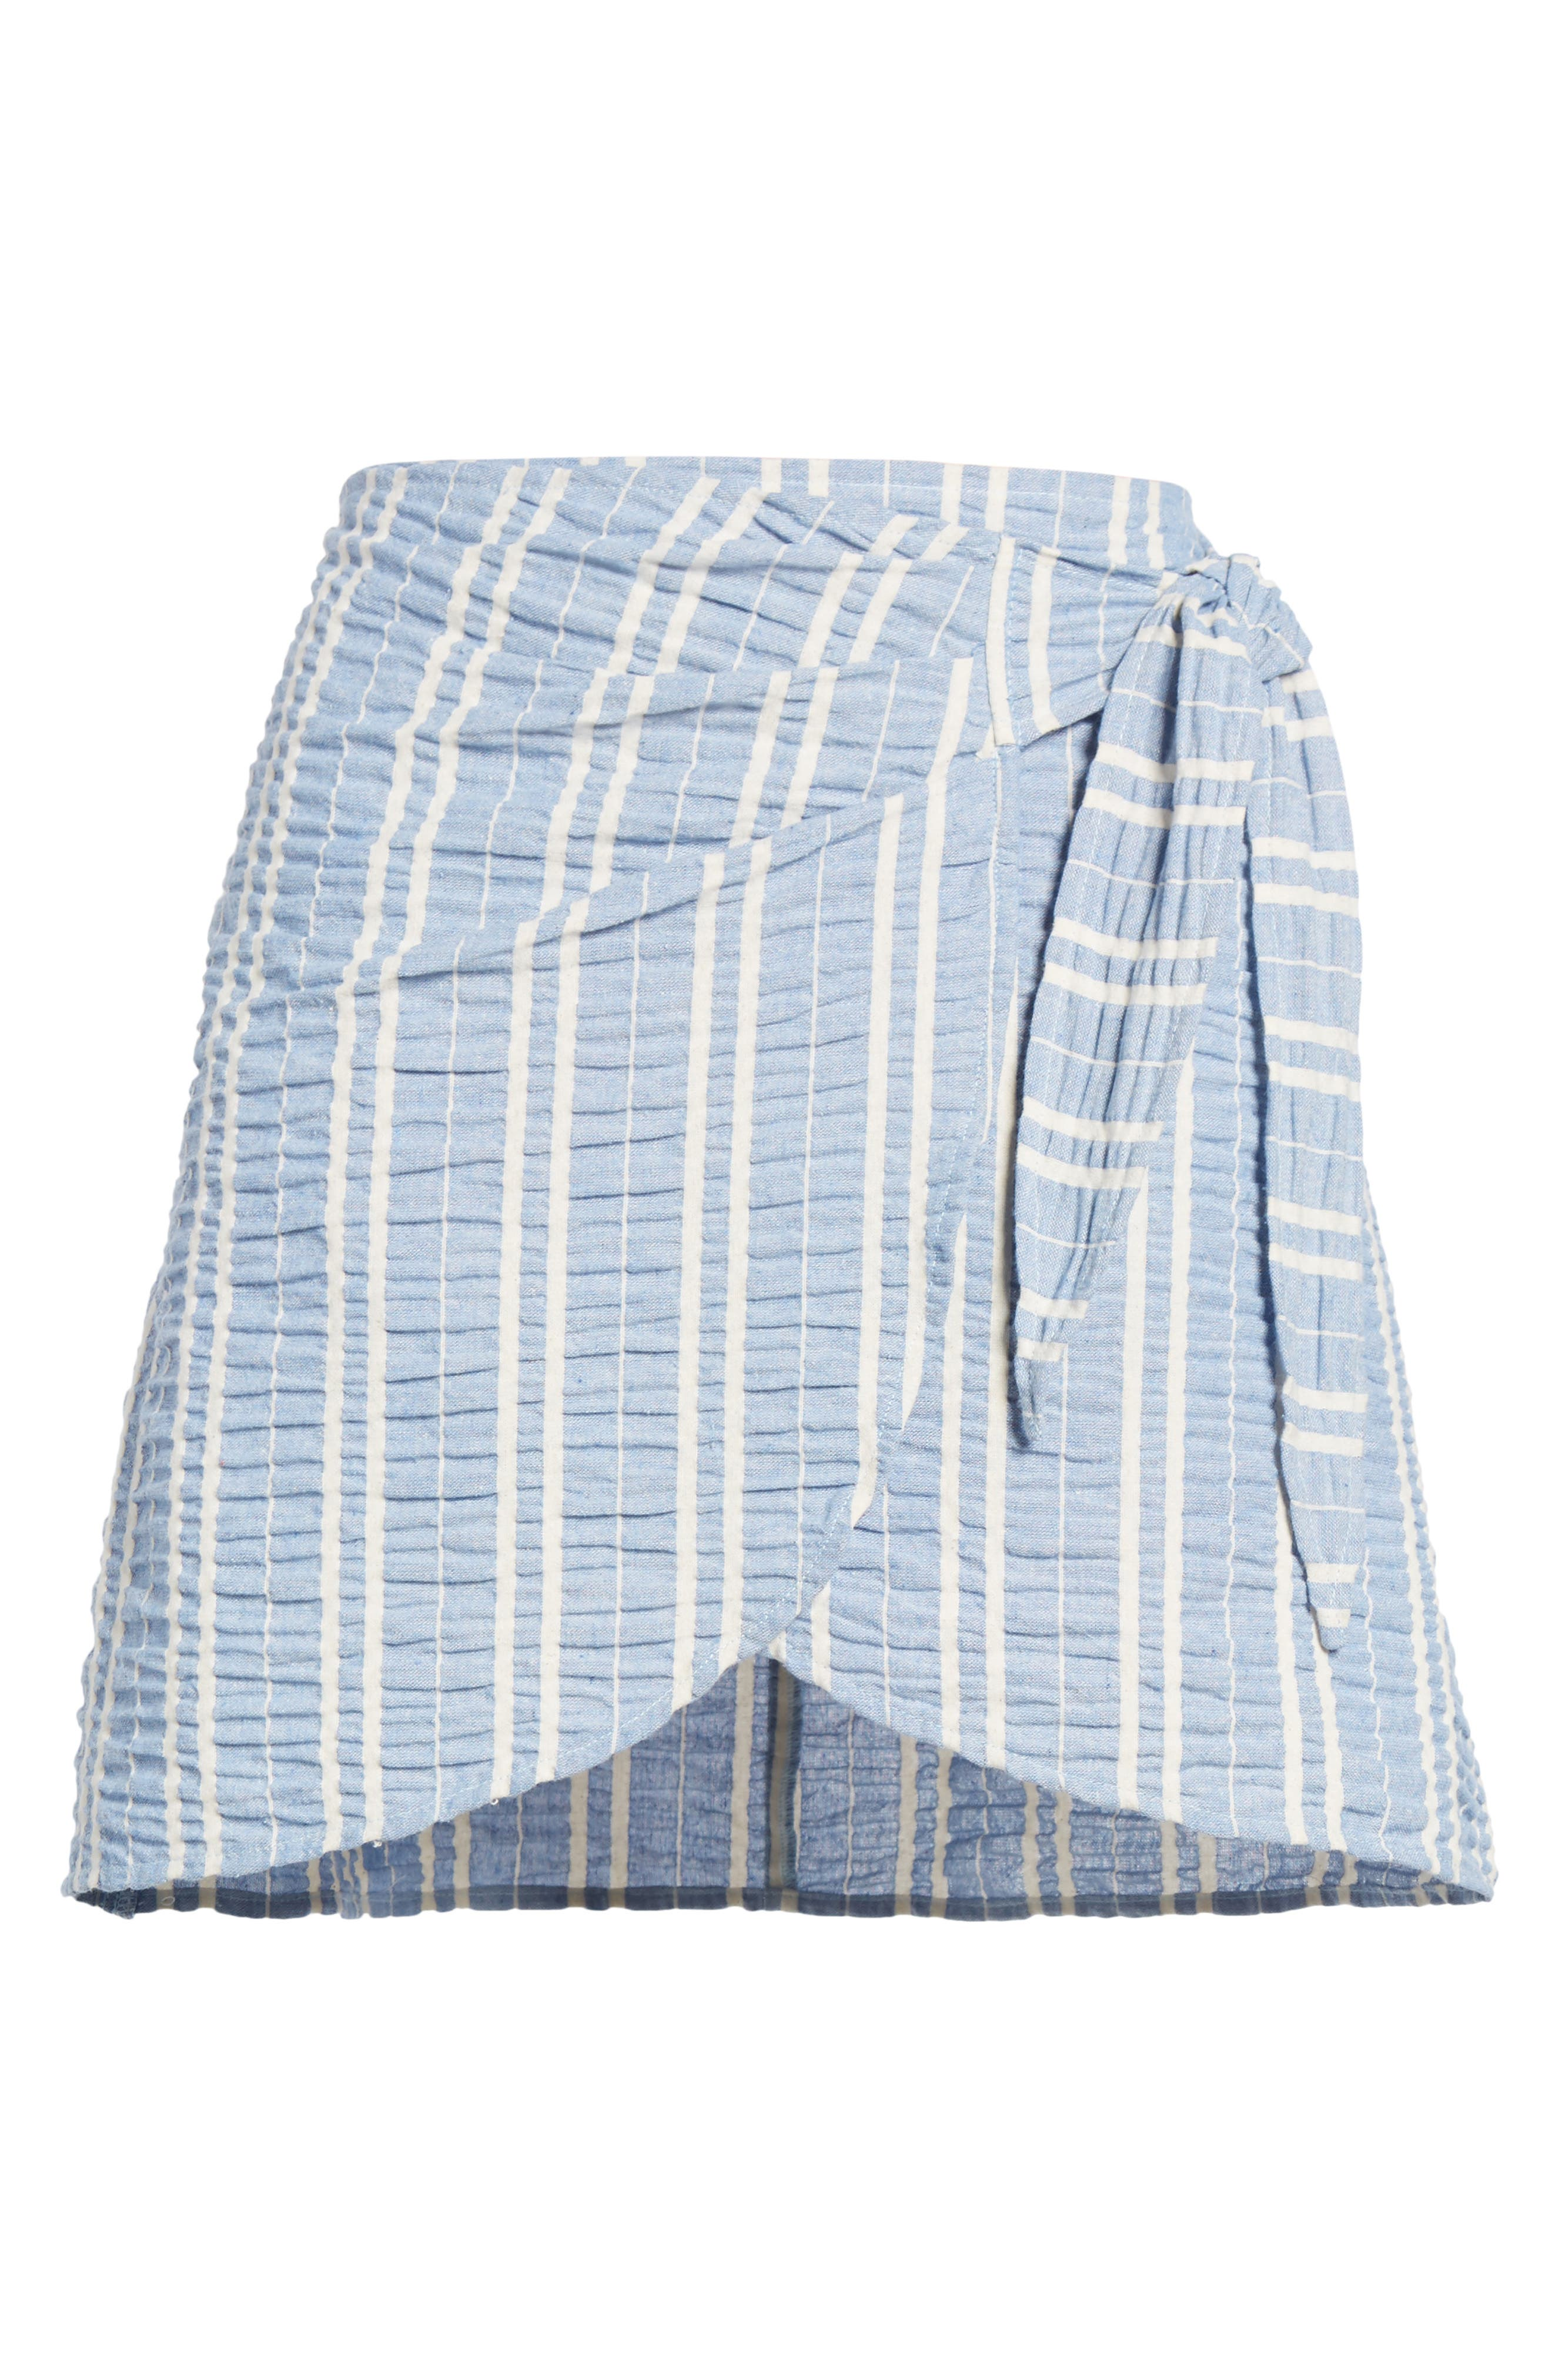 LOST + WANDER,                             Waves Wrap Front Skirt,                             Alternate thumbnail 6, color,                             466